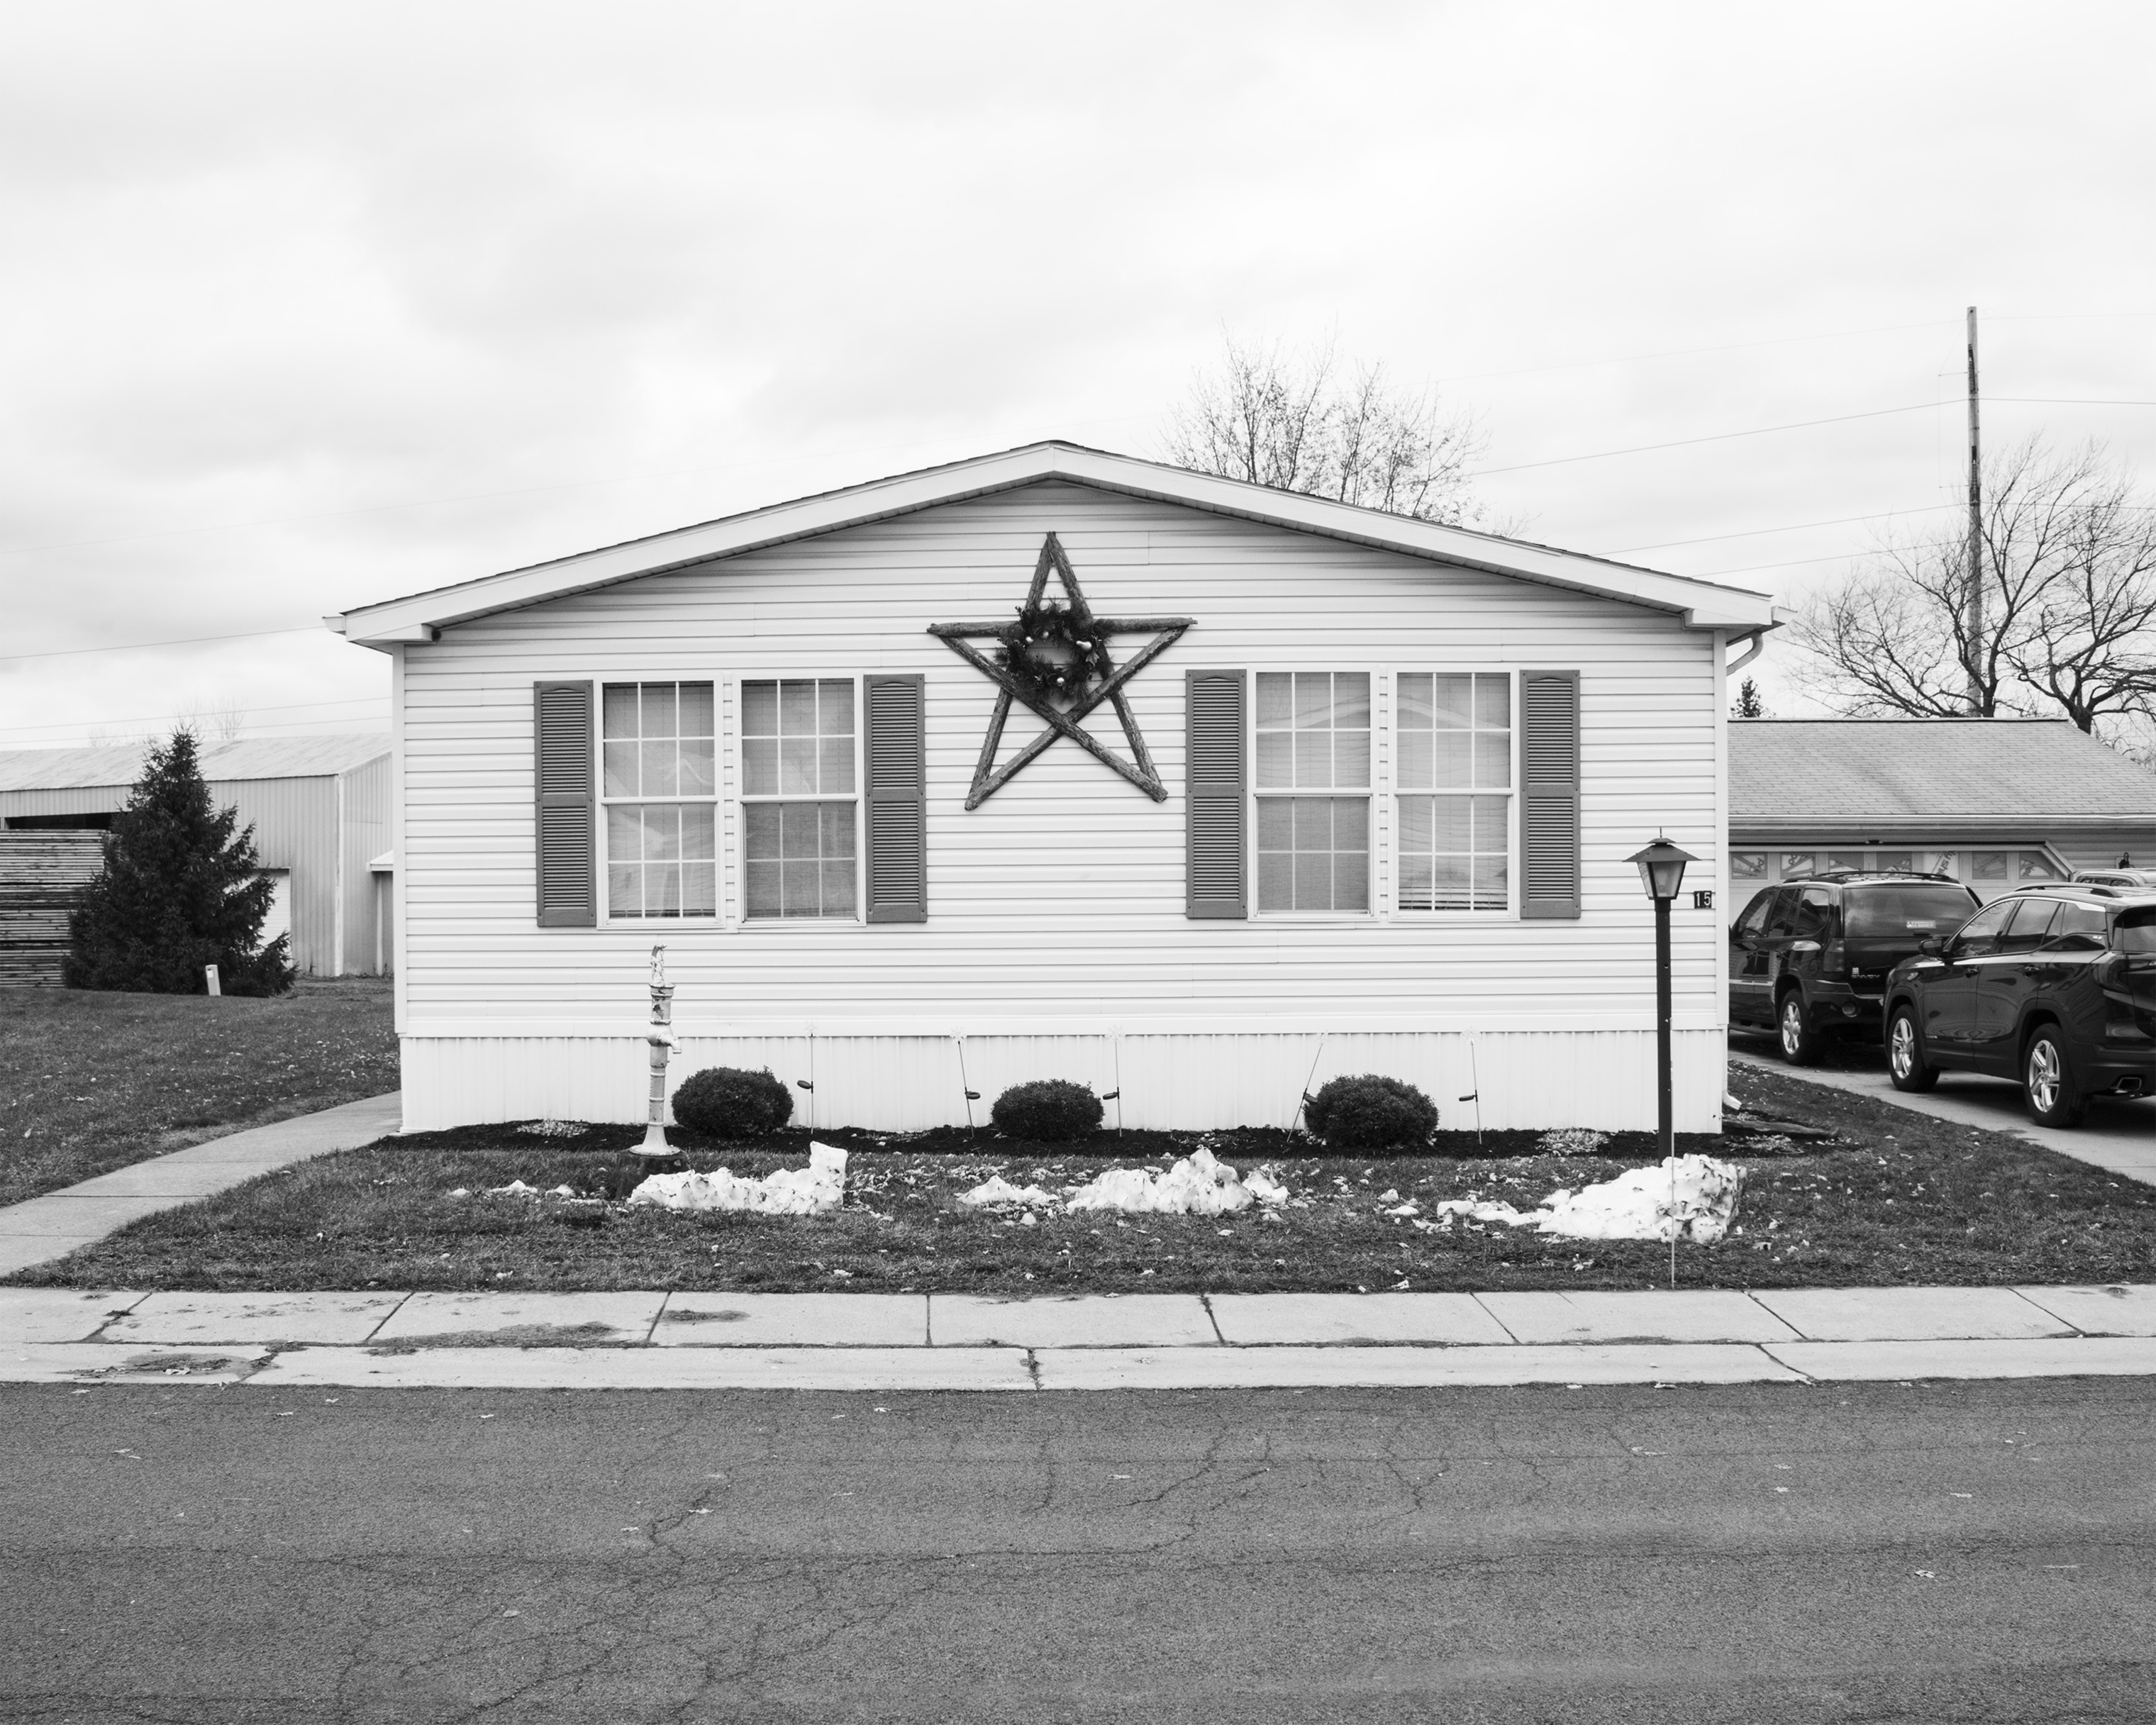 Mobile Home Residents Are Trying to Save Affordable Housing ... on